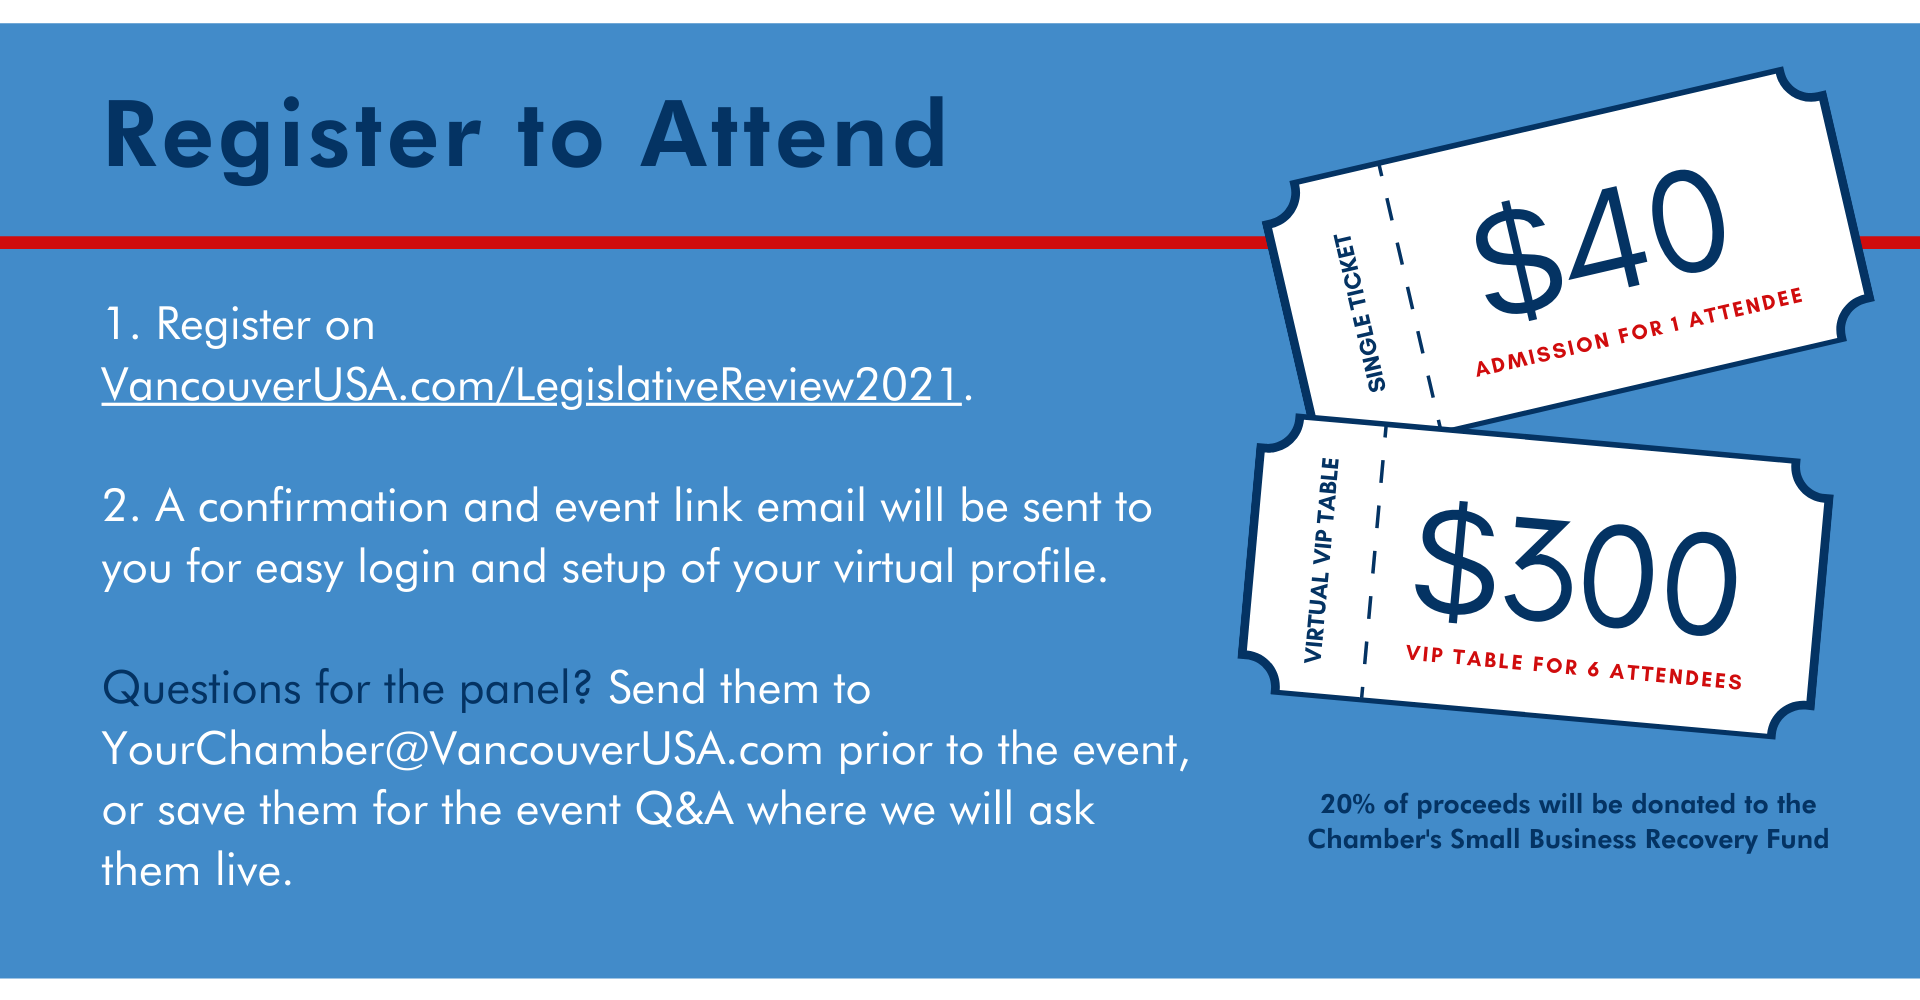 1. Register on VancouverUSA.com/LegislativeReview2021.  2. A confirmation and event link email will be sent to you for easy login and setup of your virtual profile.  Questions for the panel? Send them to YourChamber@VancouverUSA.com prior to the event, or save them for the event Q&A where we will ask them live. Register to Attend 20% of proceeds will be donated to the Chamber's Small Business Recovery Fund $300 virtual vip table admission for 6 attendees six single ticket $40 admission for one attendee